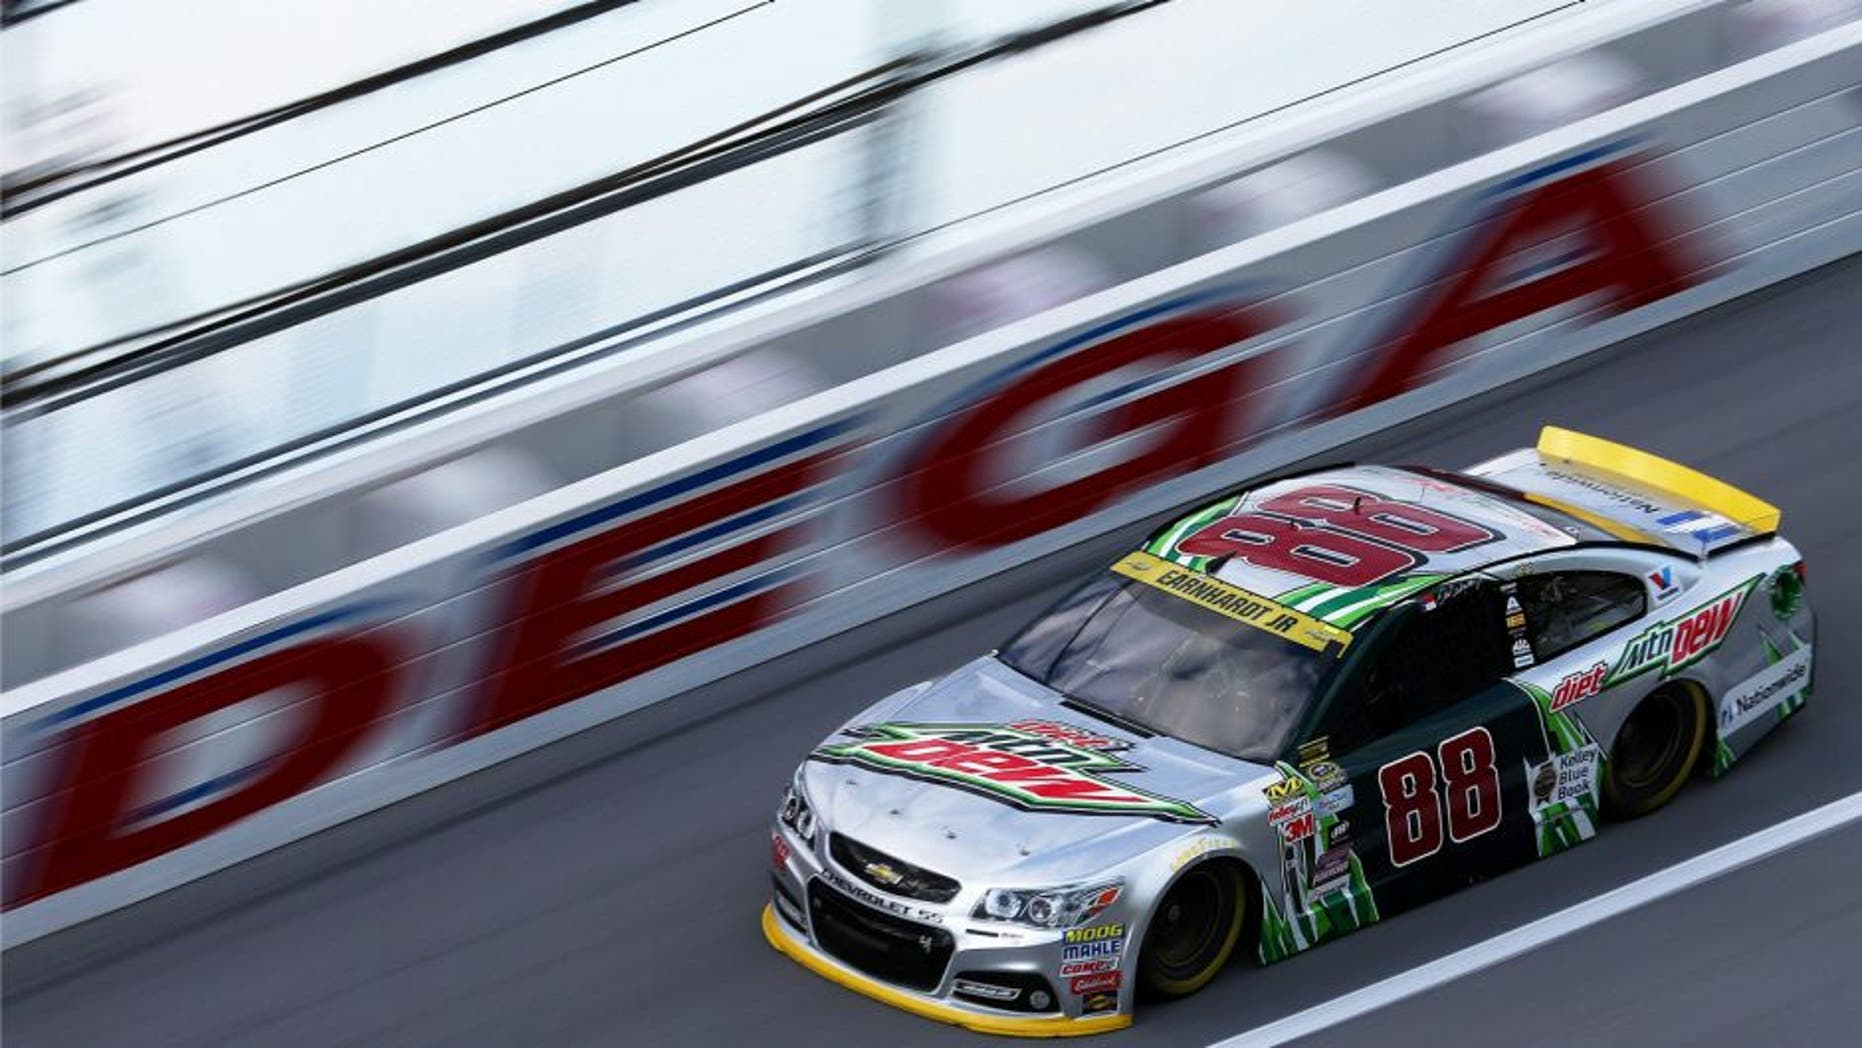 TALLADEGA, AL - OCTOBER 23: Dale Earnhardt Jr., driver of the #88 Diet Mountain Dew Chevrolet, practices for the NASCAR Sprint Cup Series CampingWorld.com 500 at Talladega Superspeedway on October 23, 2015 in Talladega, Alabama. (Photo by Sarah Crabill/Getty Images) PREMIUM ACCESSDate created:October 23, 2015Editorial #: 493956302 Restrictions:Contact your local office for all commercial or promotional uses. Full editorial rights UK, US, Ireland, Australia, NZ, Canada (not Quebec). Restricted editorial rights for daily newspapers elsewhere, please call.Licence type:Rights-managed Collection:Getty Images SportMax file size:3,990 x 2,661 px (33.78 x 22.53 cm) - 300 dpi - 3.1 MBRelease info:Not released.More informationSource:Getty Images North AmericaObject name:532294687JC00293_NASCAR_Spr